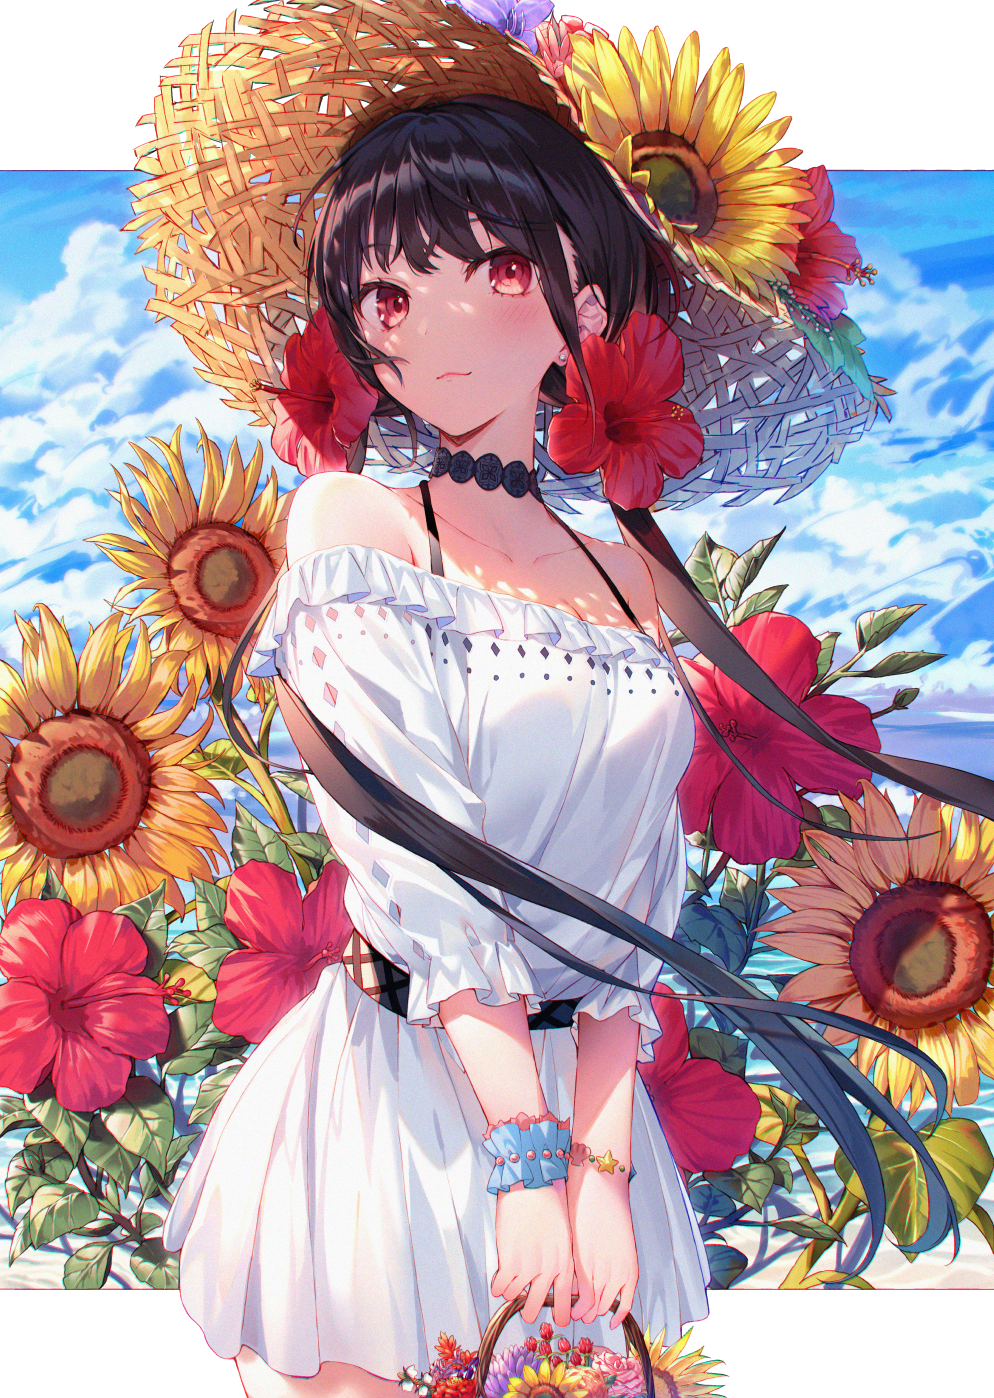 1girl bangs bare_shoulders black_hair blush bracelet breasts brown_headwear closed_mouth collarbone commentary day dress english_commentary eyebrows_visible_through_hair flower hair_flower hair_ornament hakuishi_aoi hat hat_flower highres holding jewelry long_hair long_sleeves looking_at_viewer low_twintails off-shoulder_dress off_shoulder original red_eyes red_flower single_wrist_cuff small_breasts solo straw_hat sunflower twintails very_long_hair white_dress wrist_cuffs yellow_flower